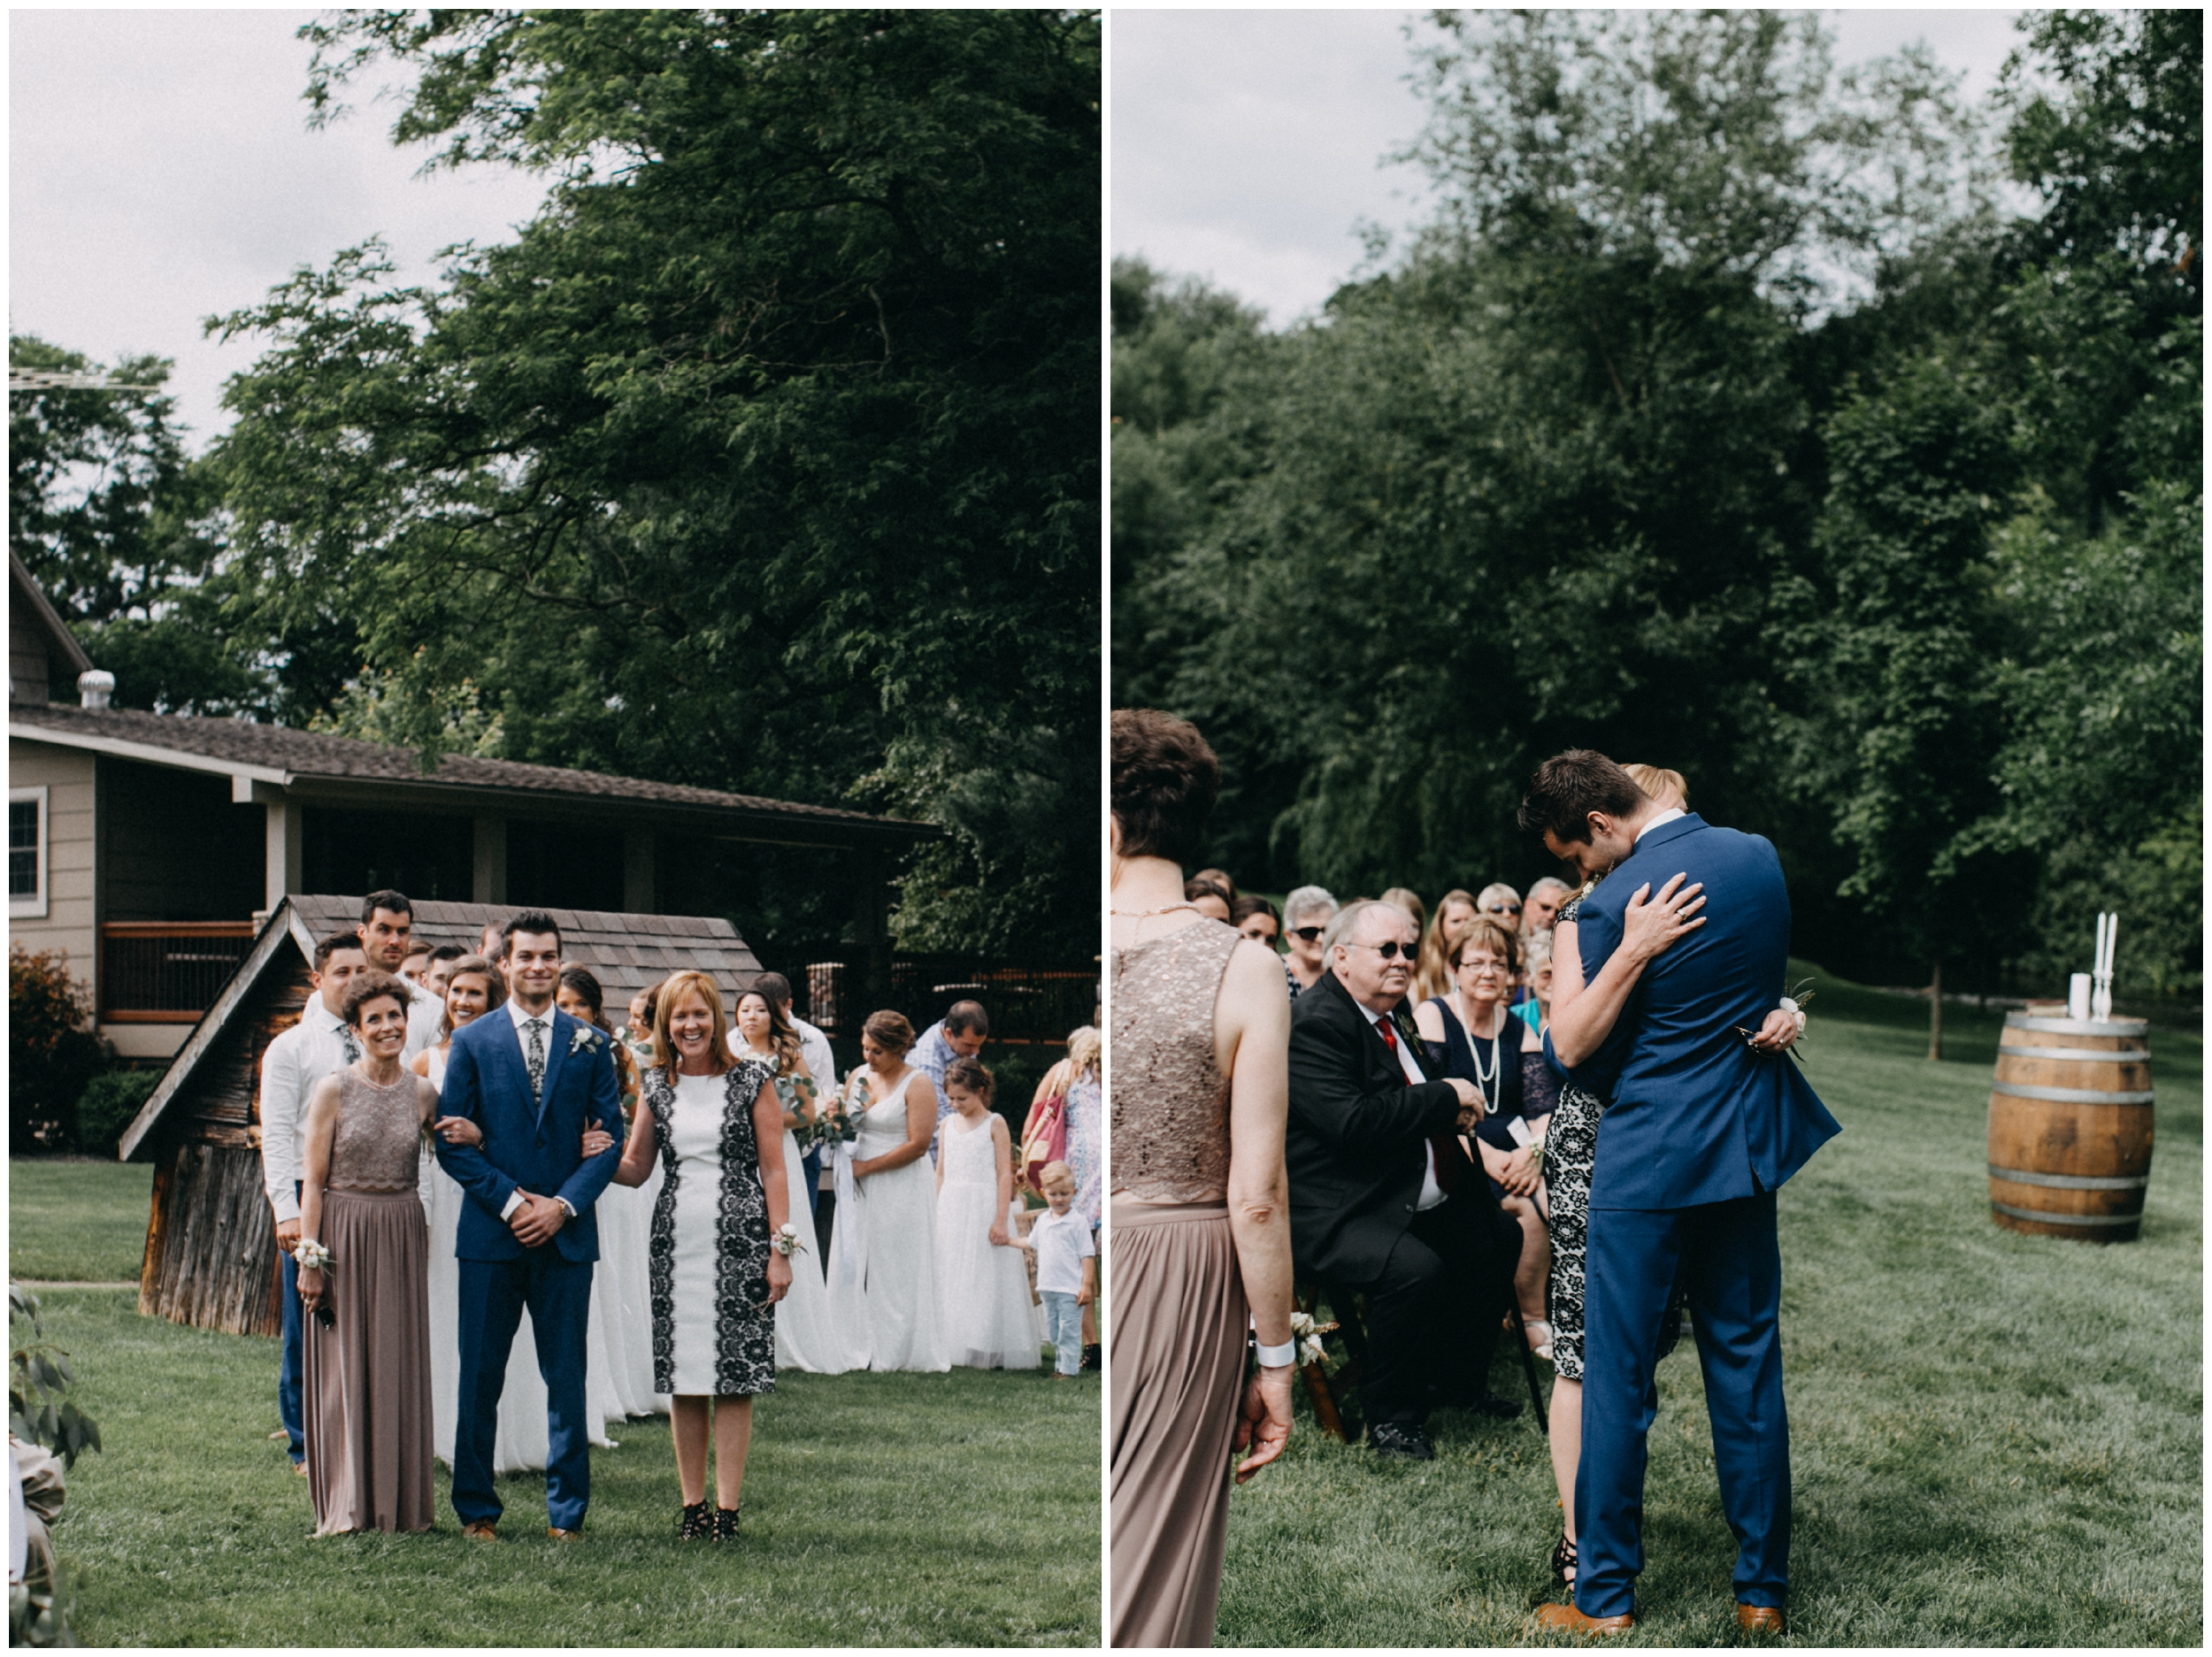 Outdoor wedding ceremony at Creekside Farm